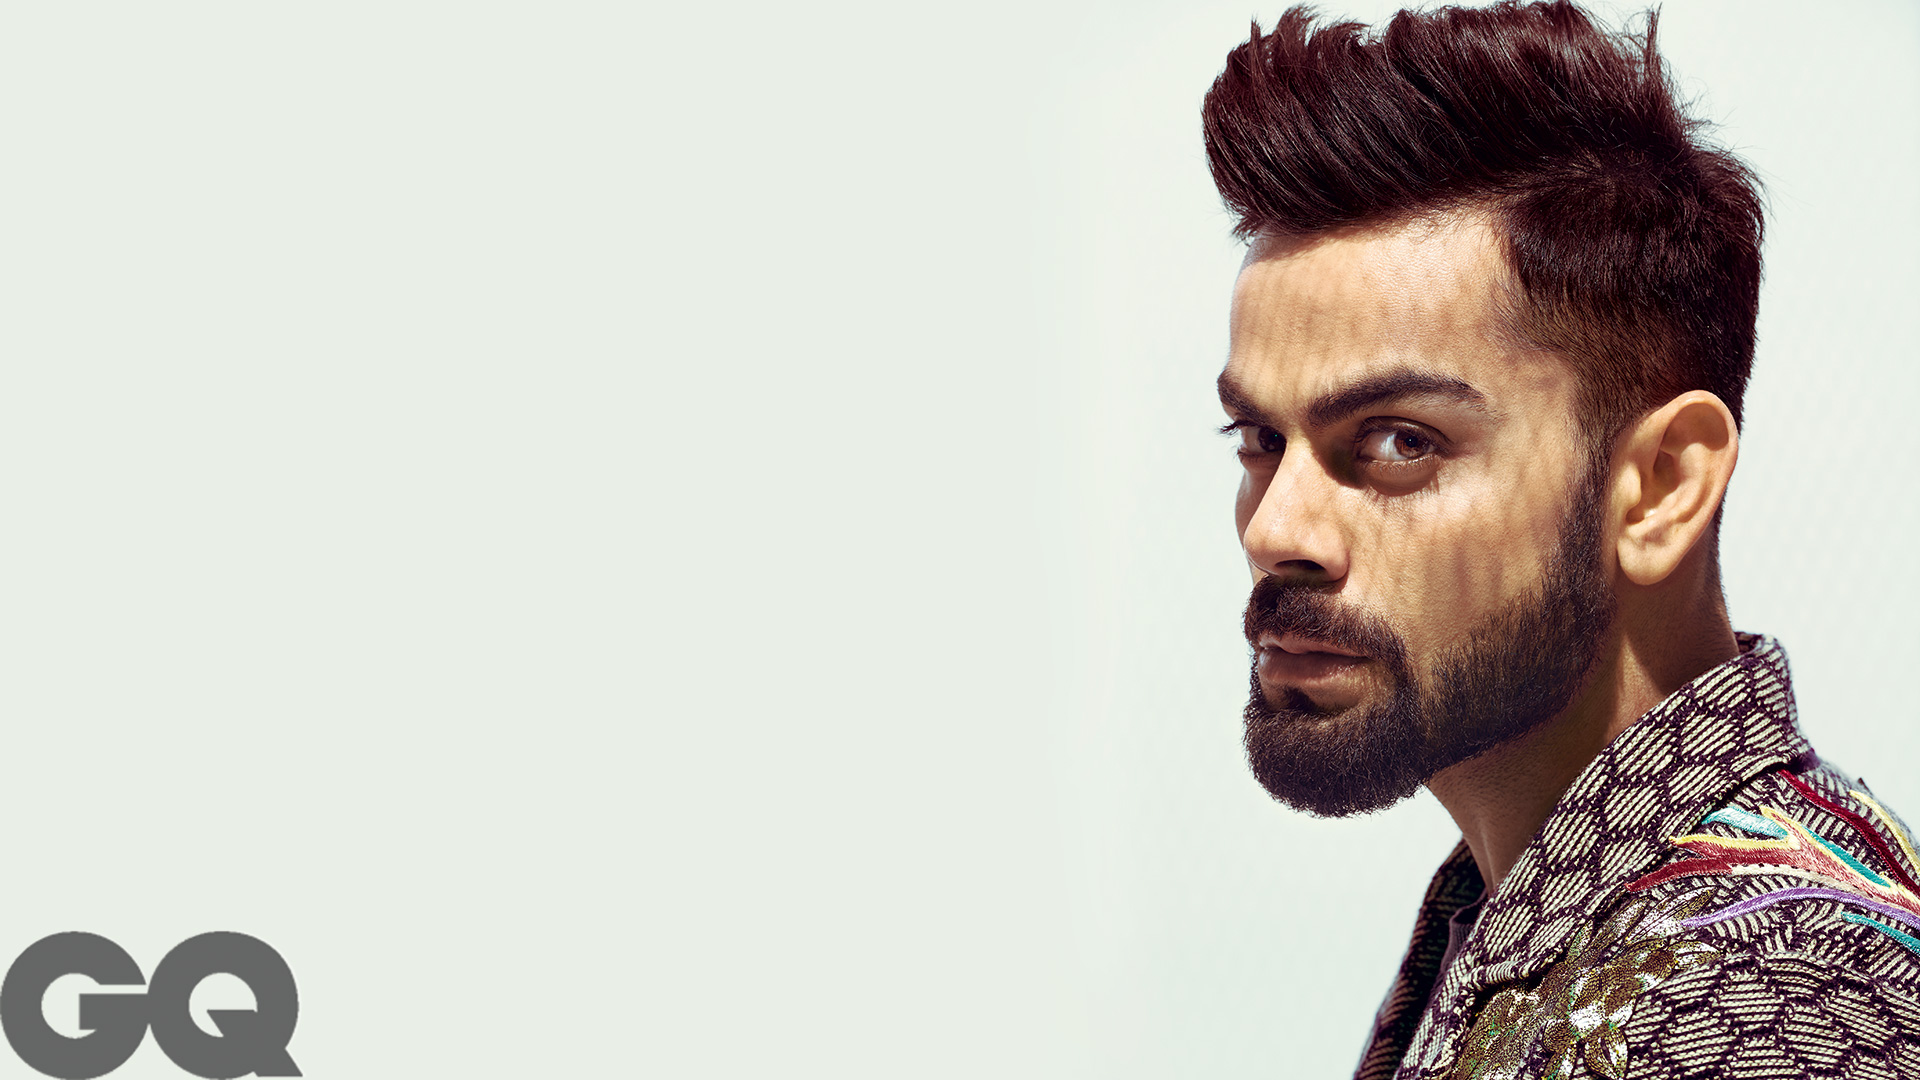 Virat Kohli Gq Hd Indian Celebrities 4k Wallpapers Images